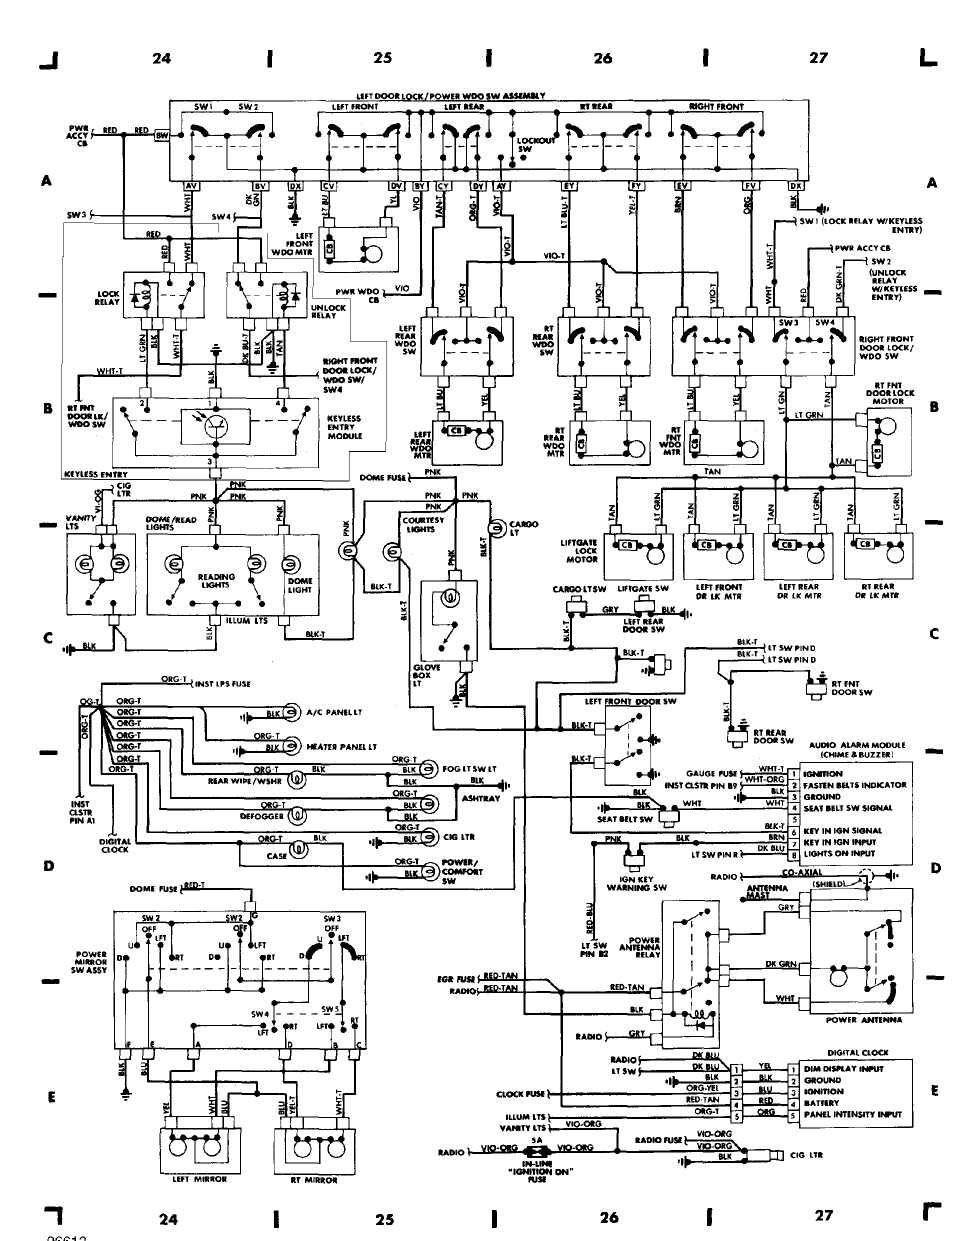 wiring_diagrams_html_61f5e0ad wiring diagrams 1984 1991 jeep cherokee (xj) jeep 95 jeep wrangler wiring harness diagram at mr168.co